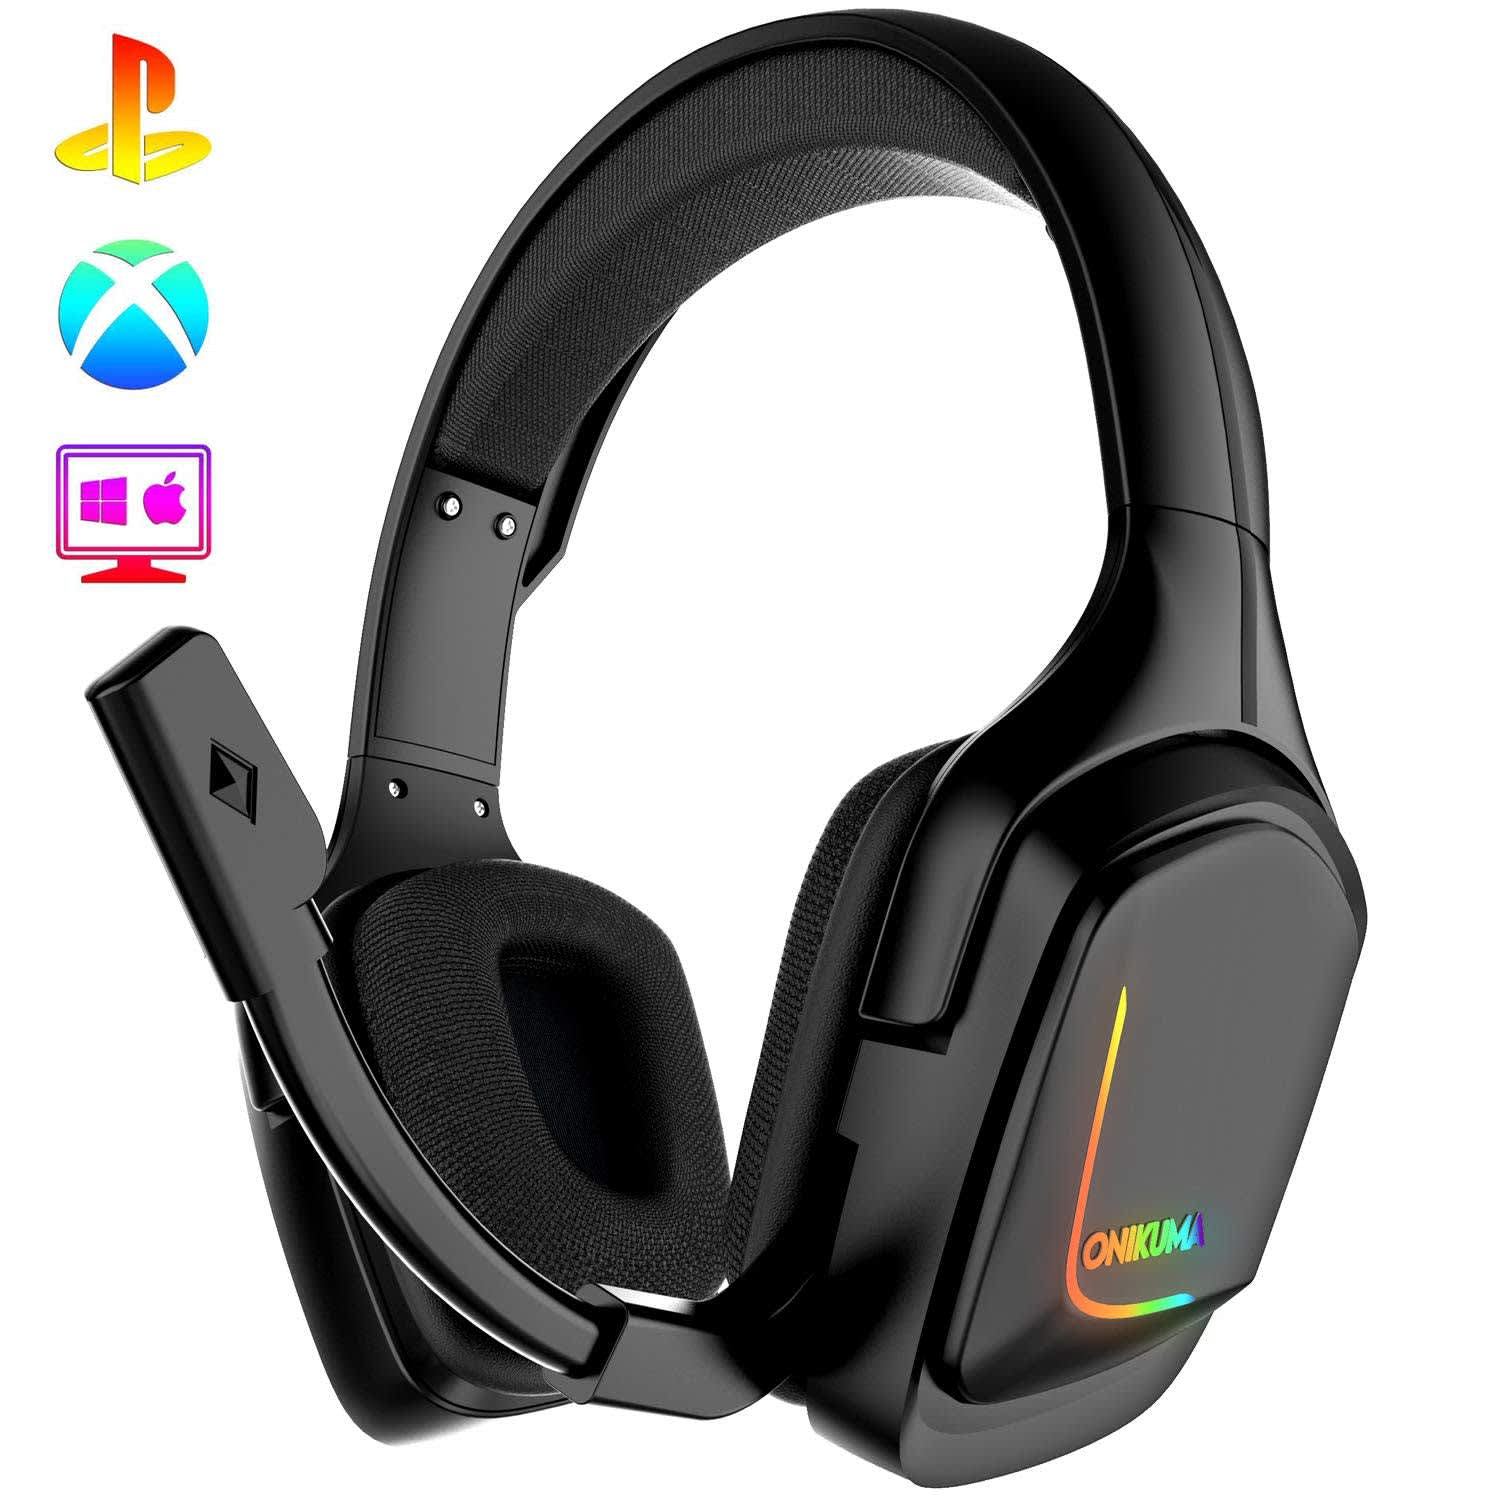 Candywe Gaming Headphones with 7.1 Surround Sound